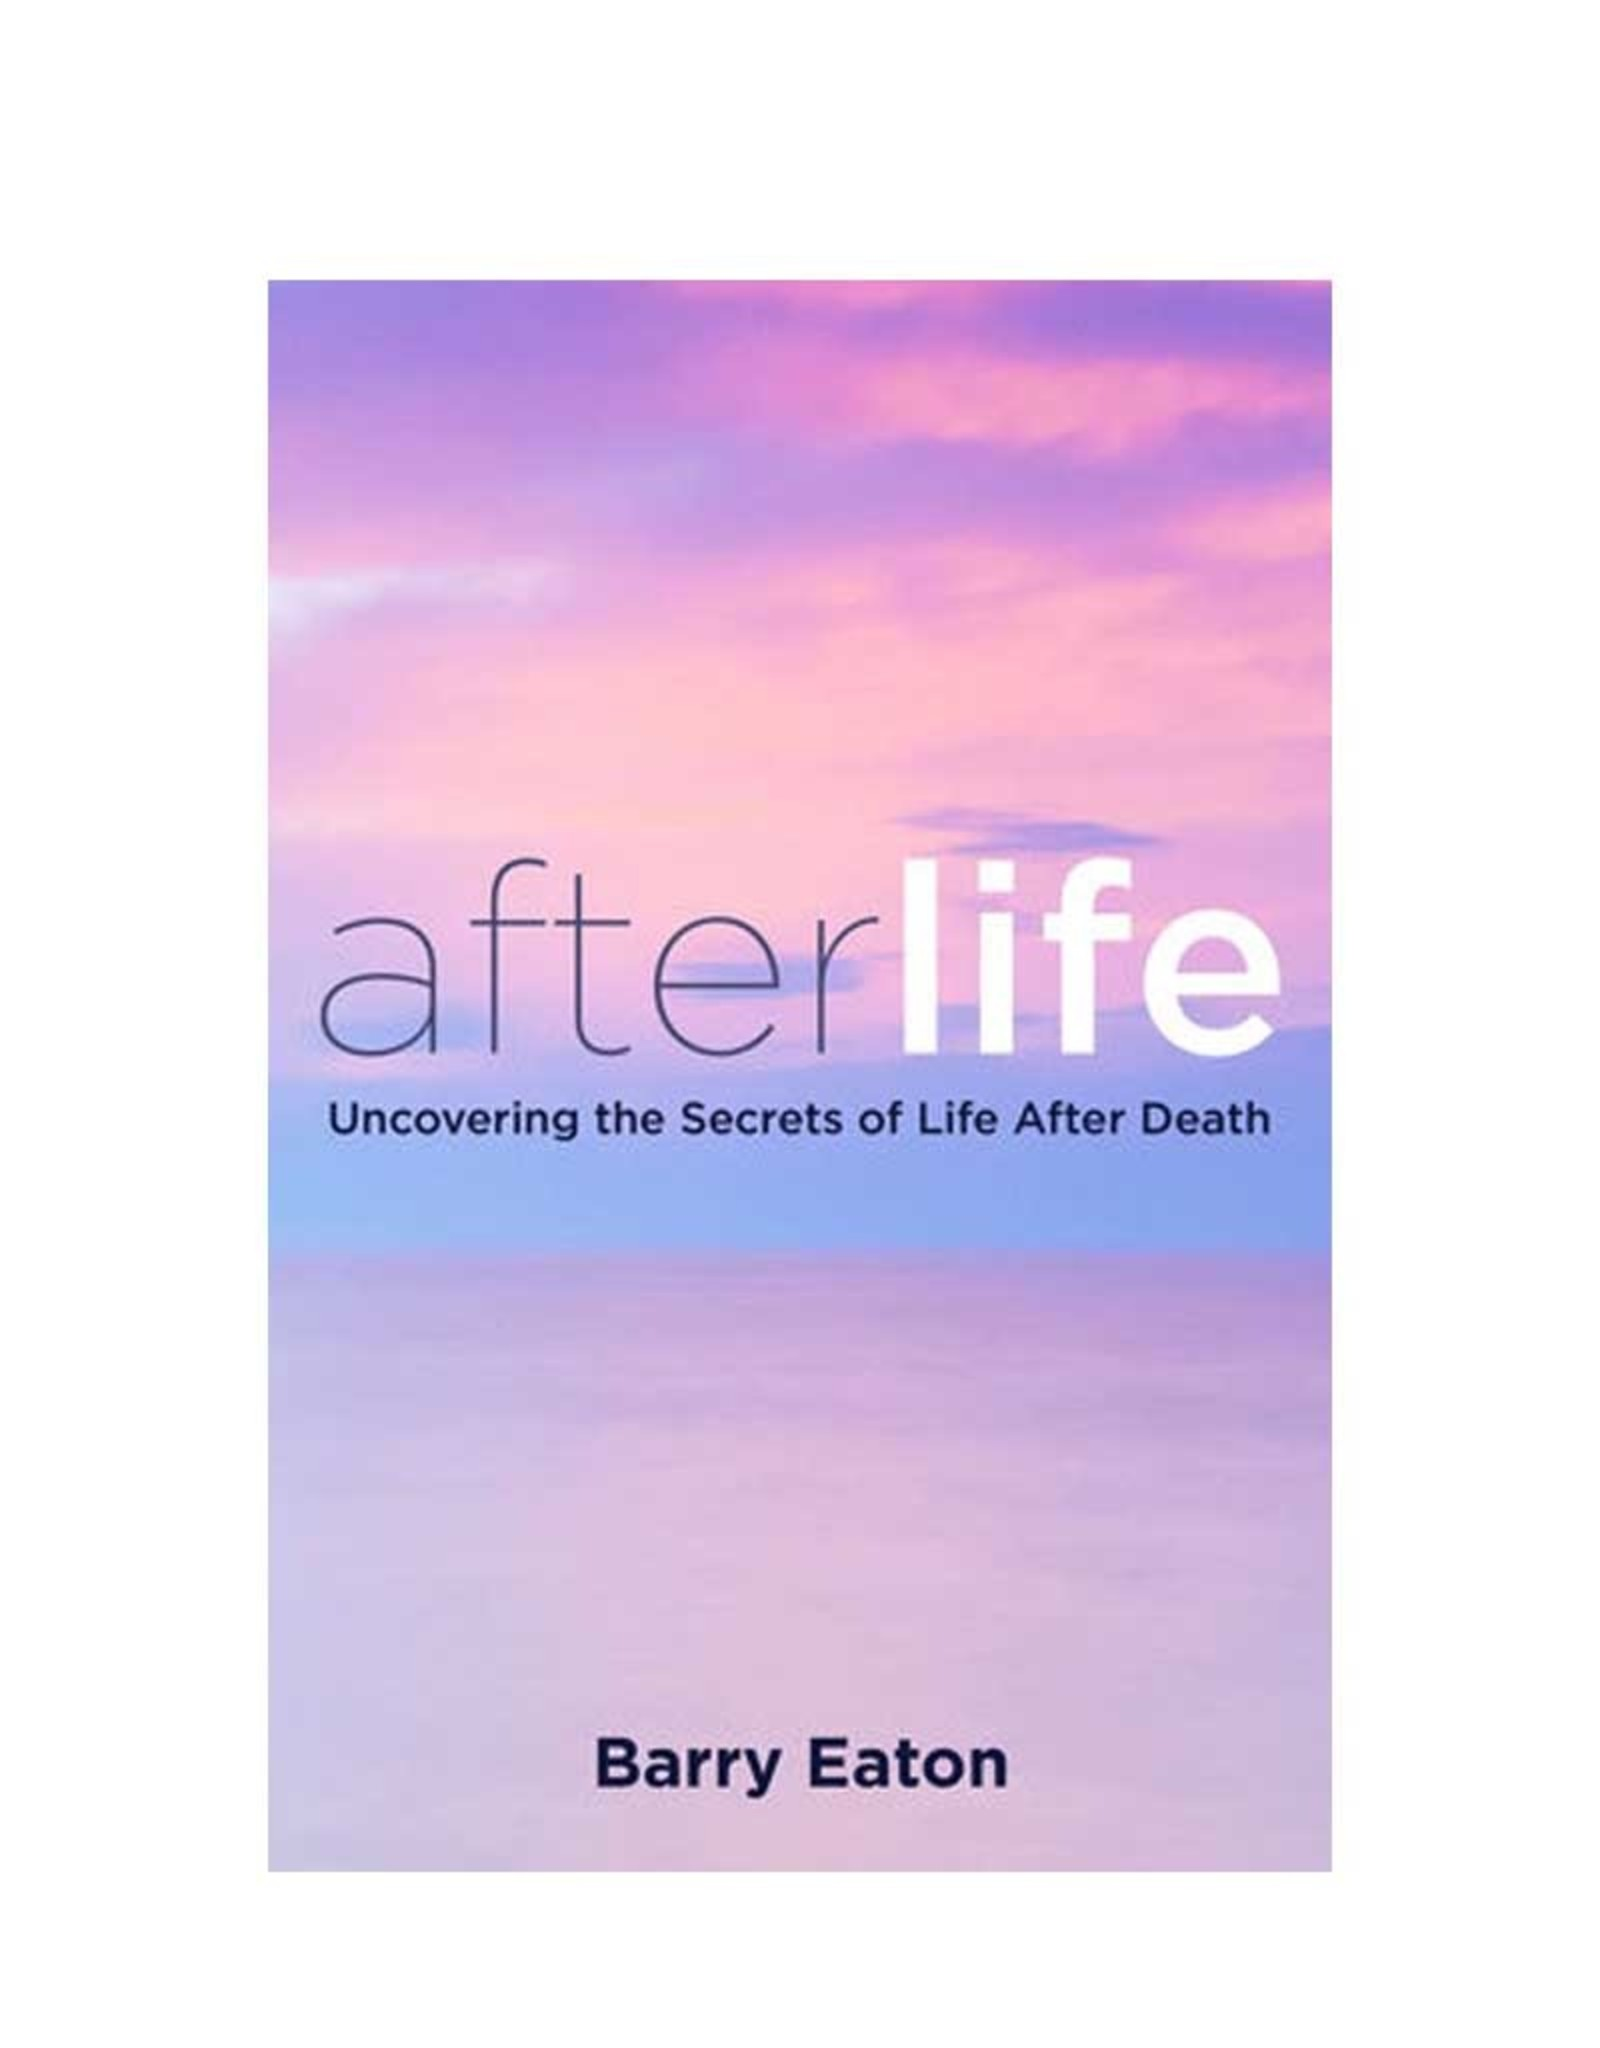 Afterlife Uncovering the Secrets of Life After Death by Barry Eaton